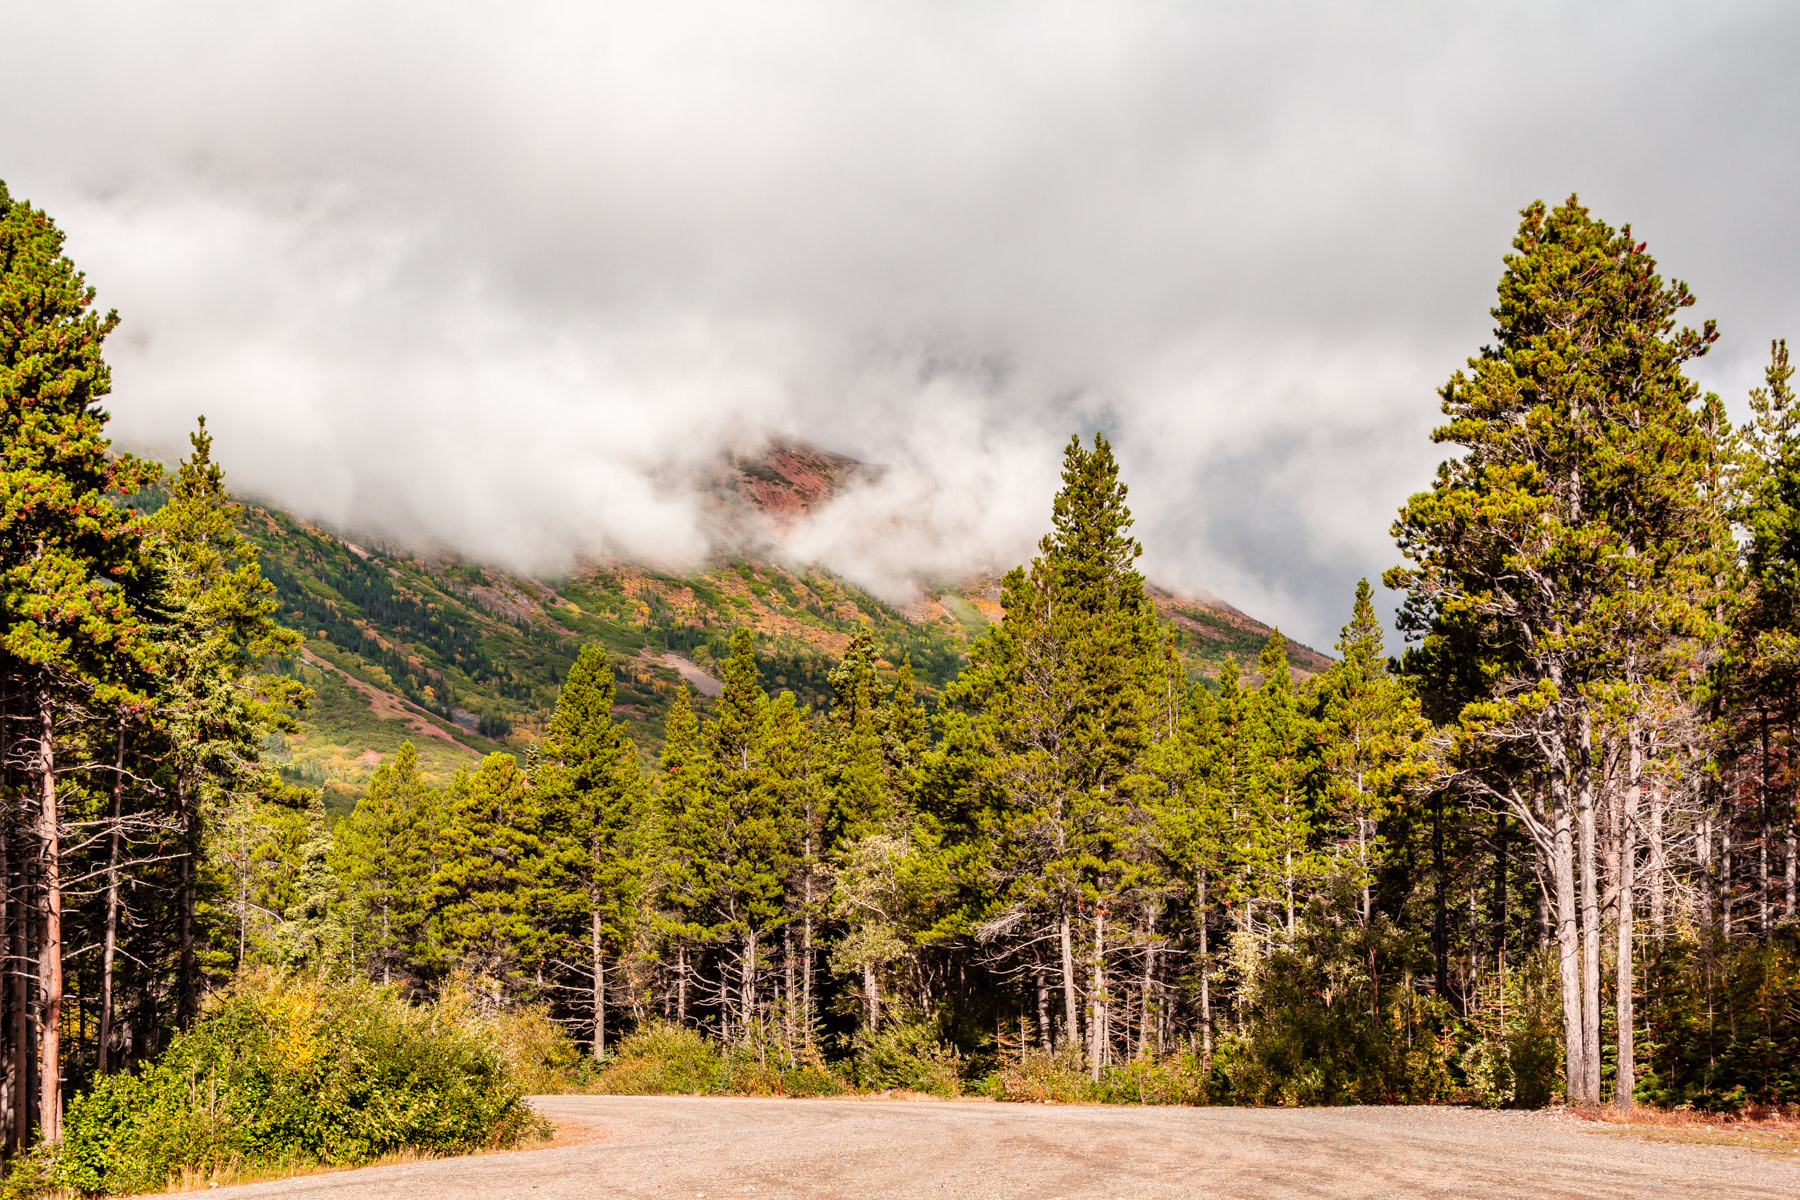 Low clouds roll over a mountain near the shore of Tutshi Lake in British Columbia's Stikine Region.